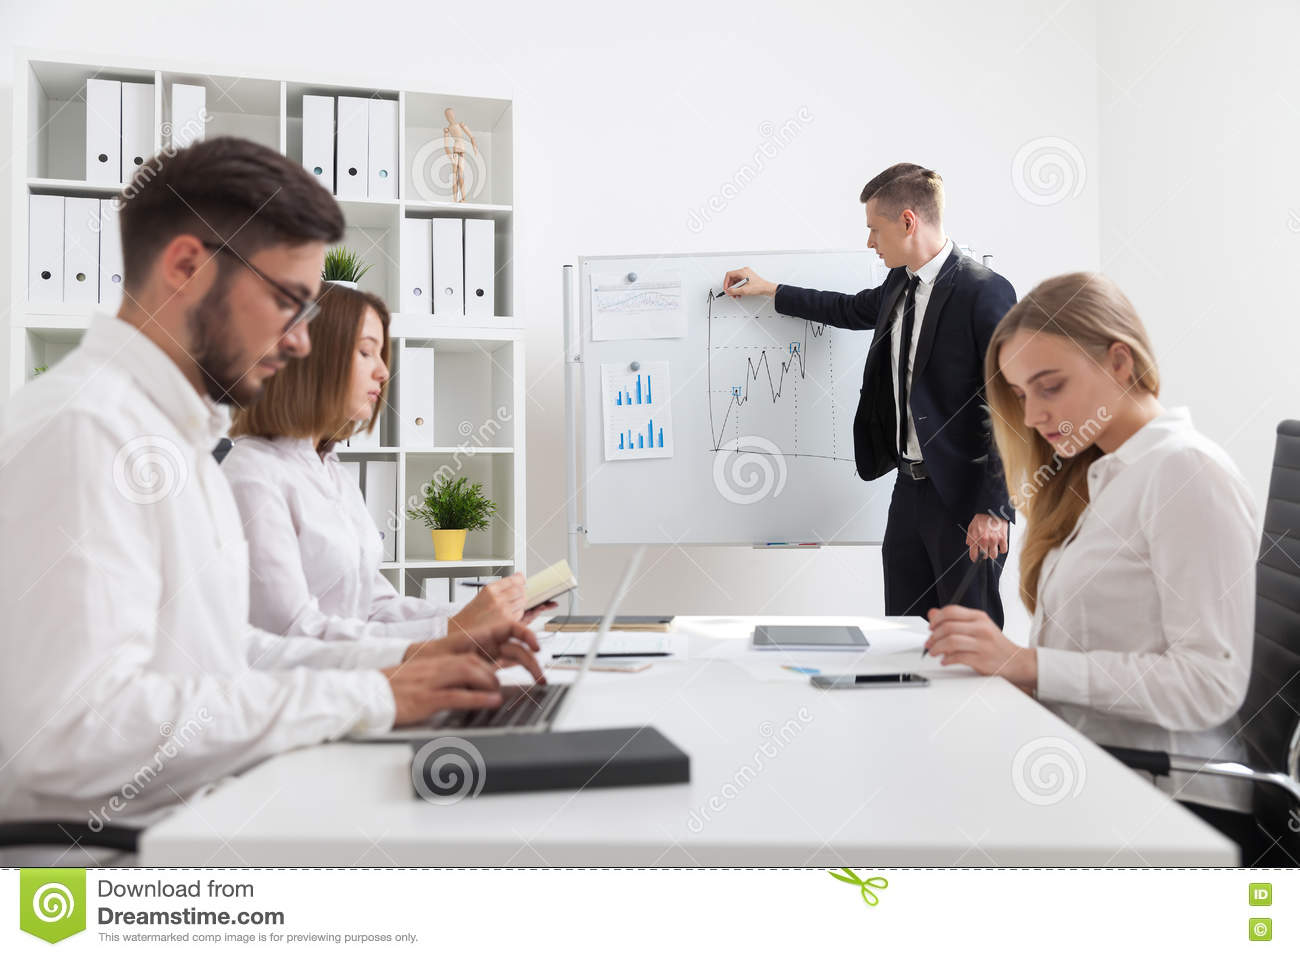 Business Meeting And Presentation Stock Image Image #0: business meeting presentation businessman explaining his work results to coworkers conference room concept office